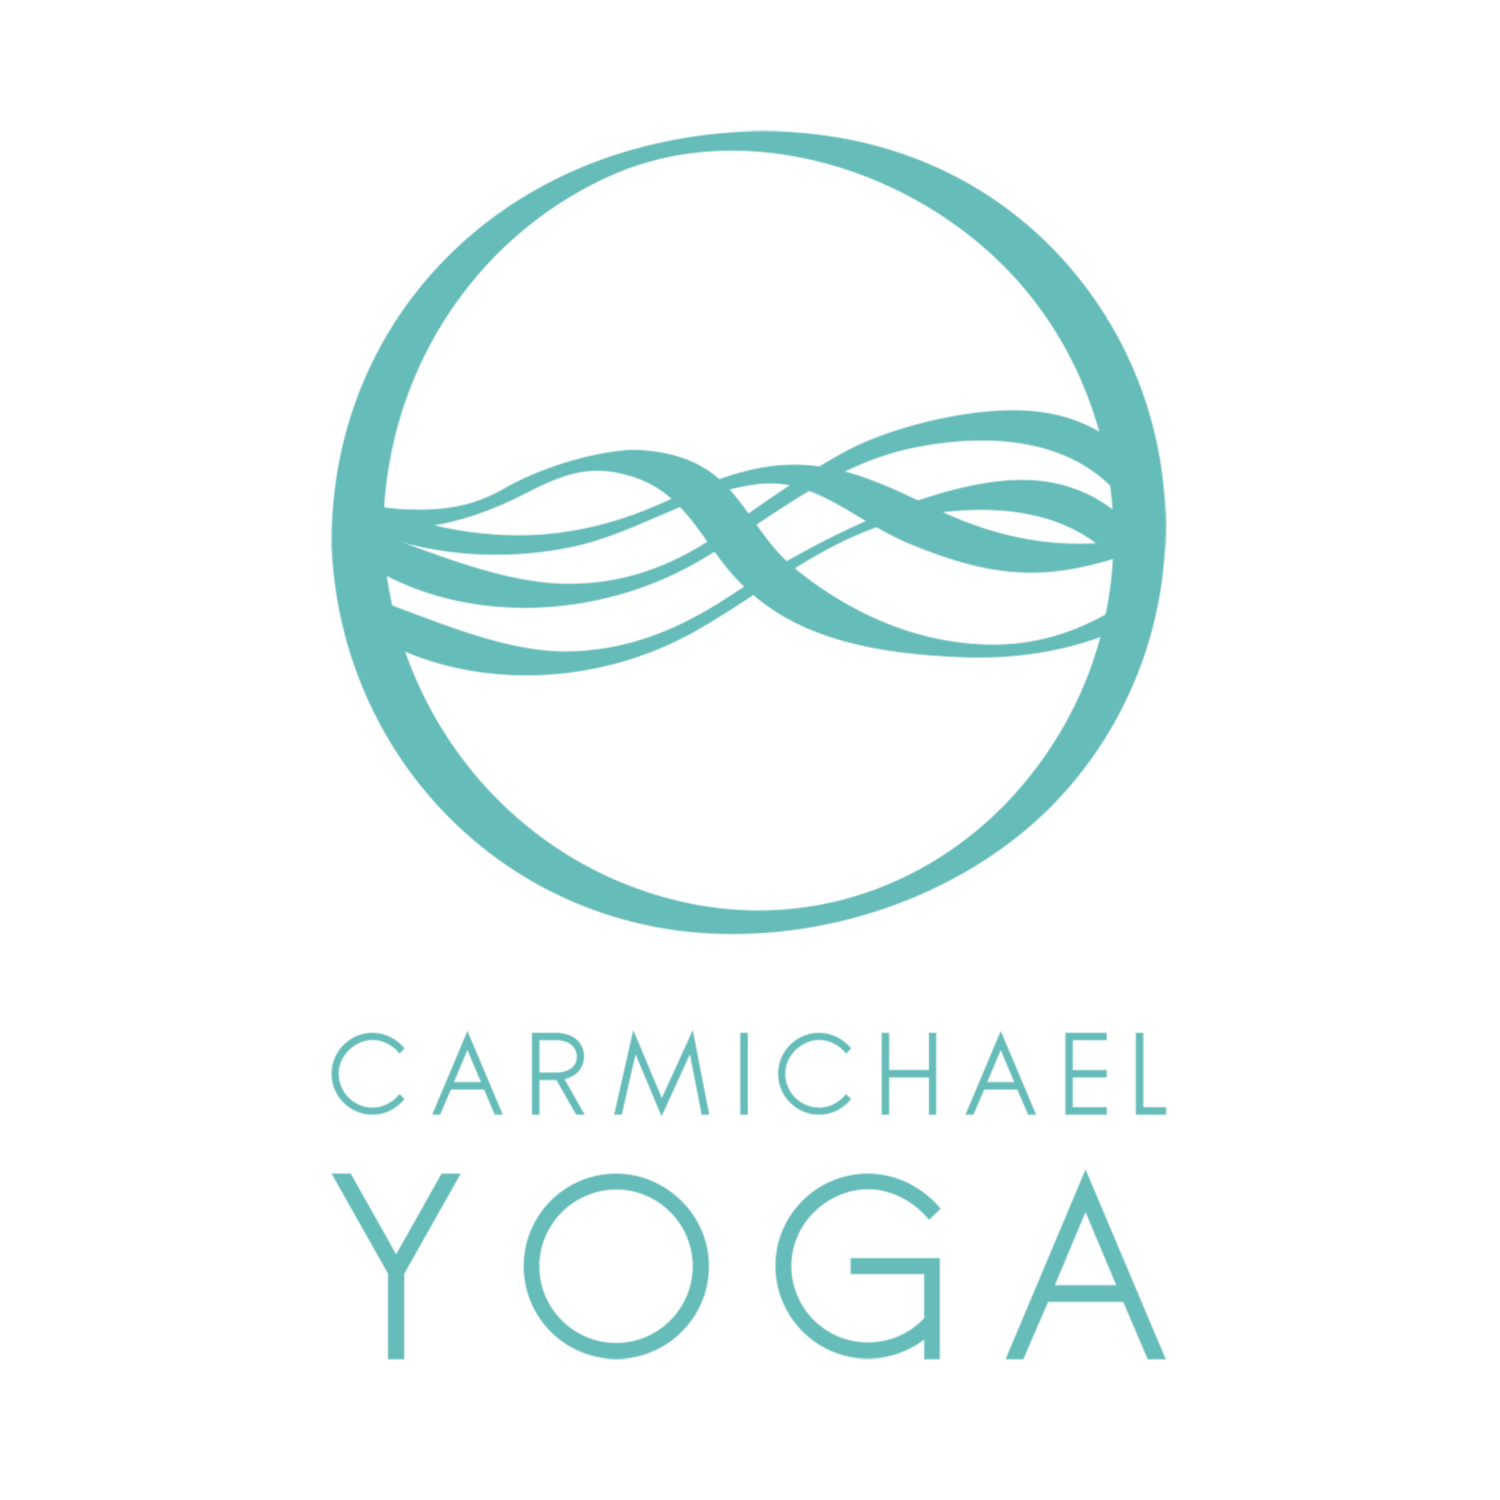 Carmichael Yoga @ Med + Fit